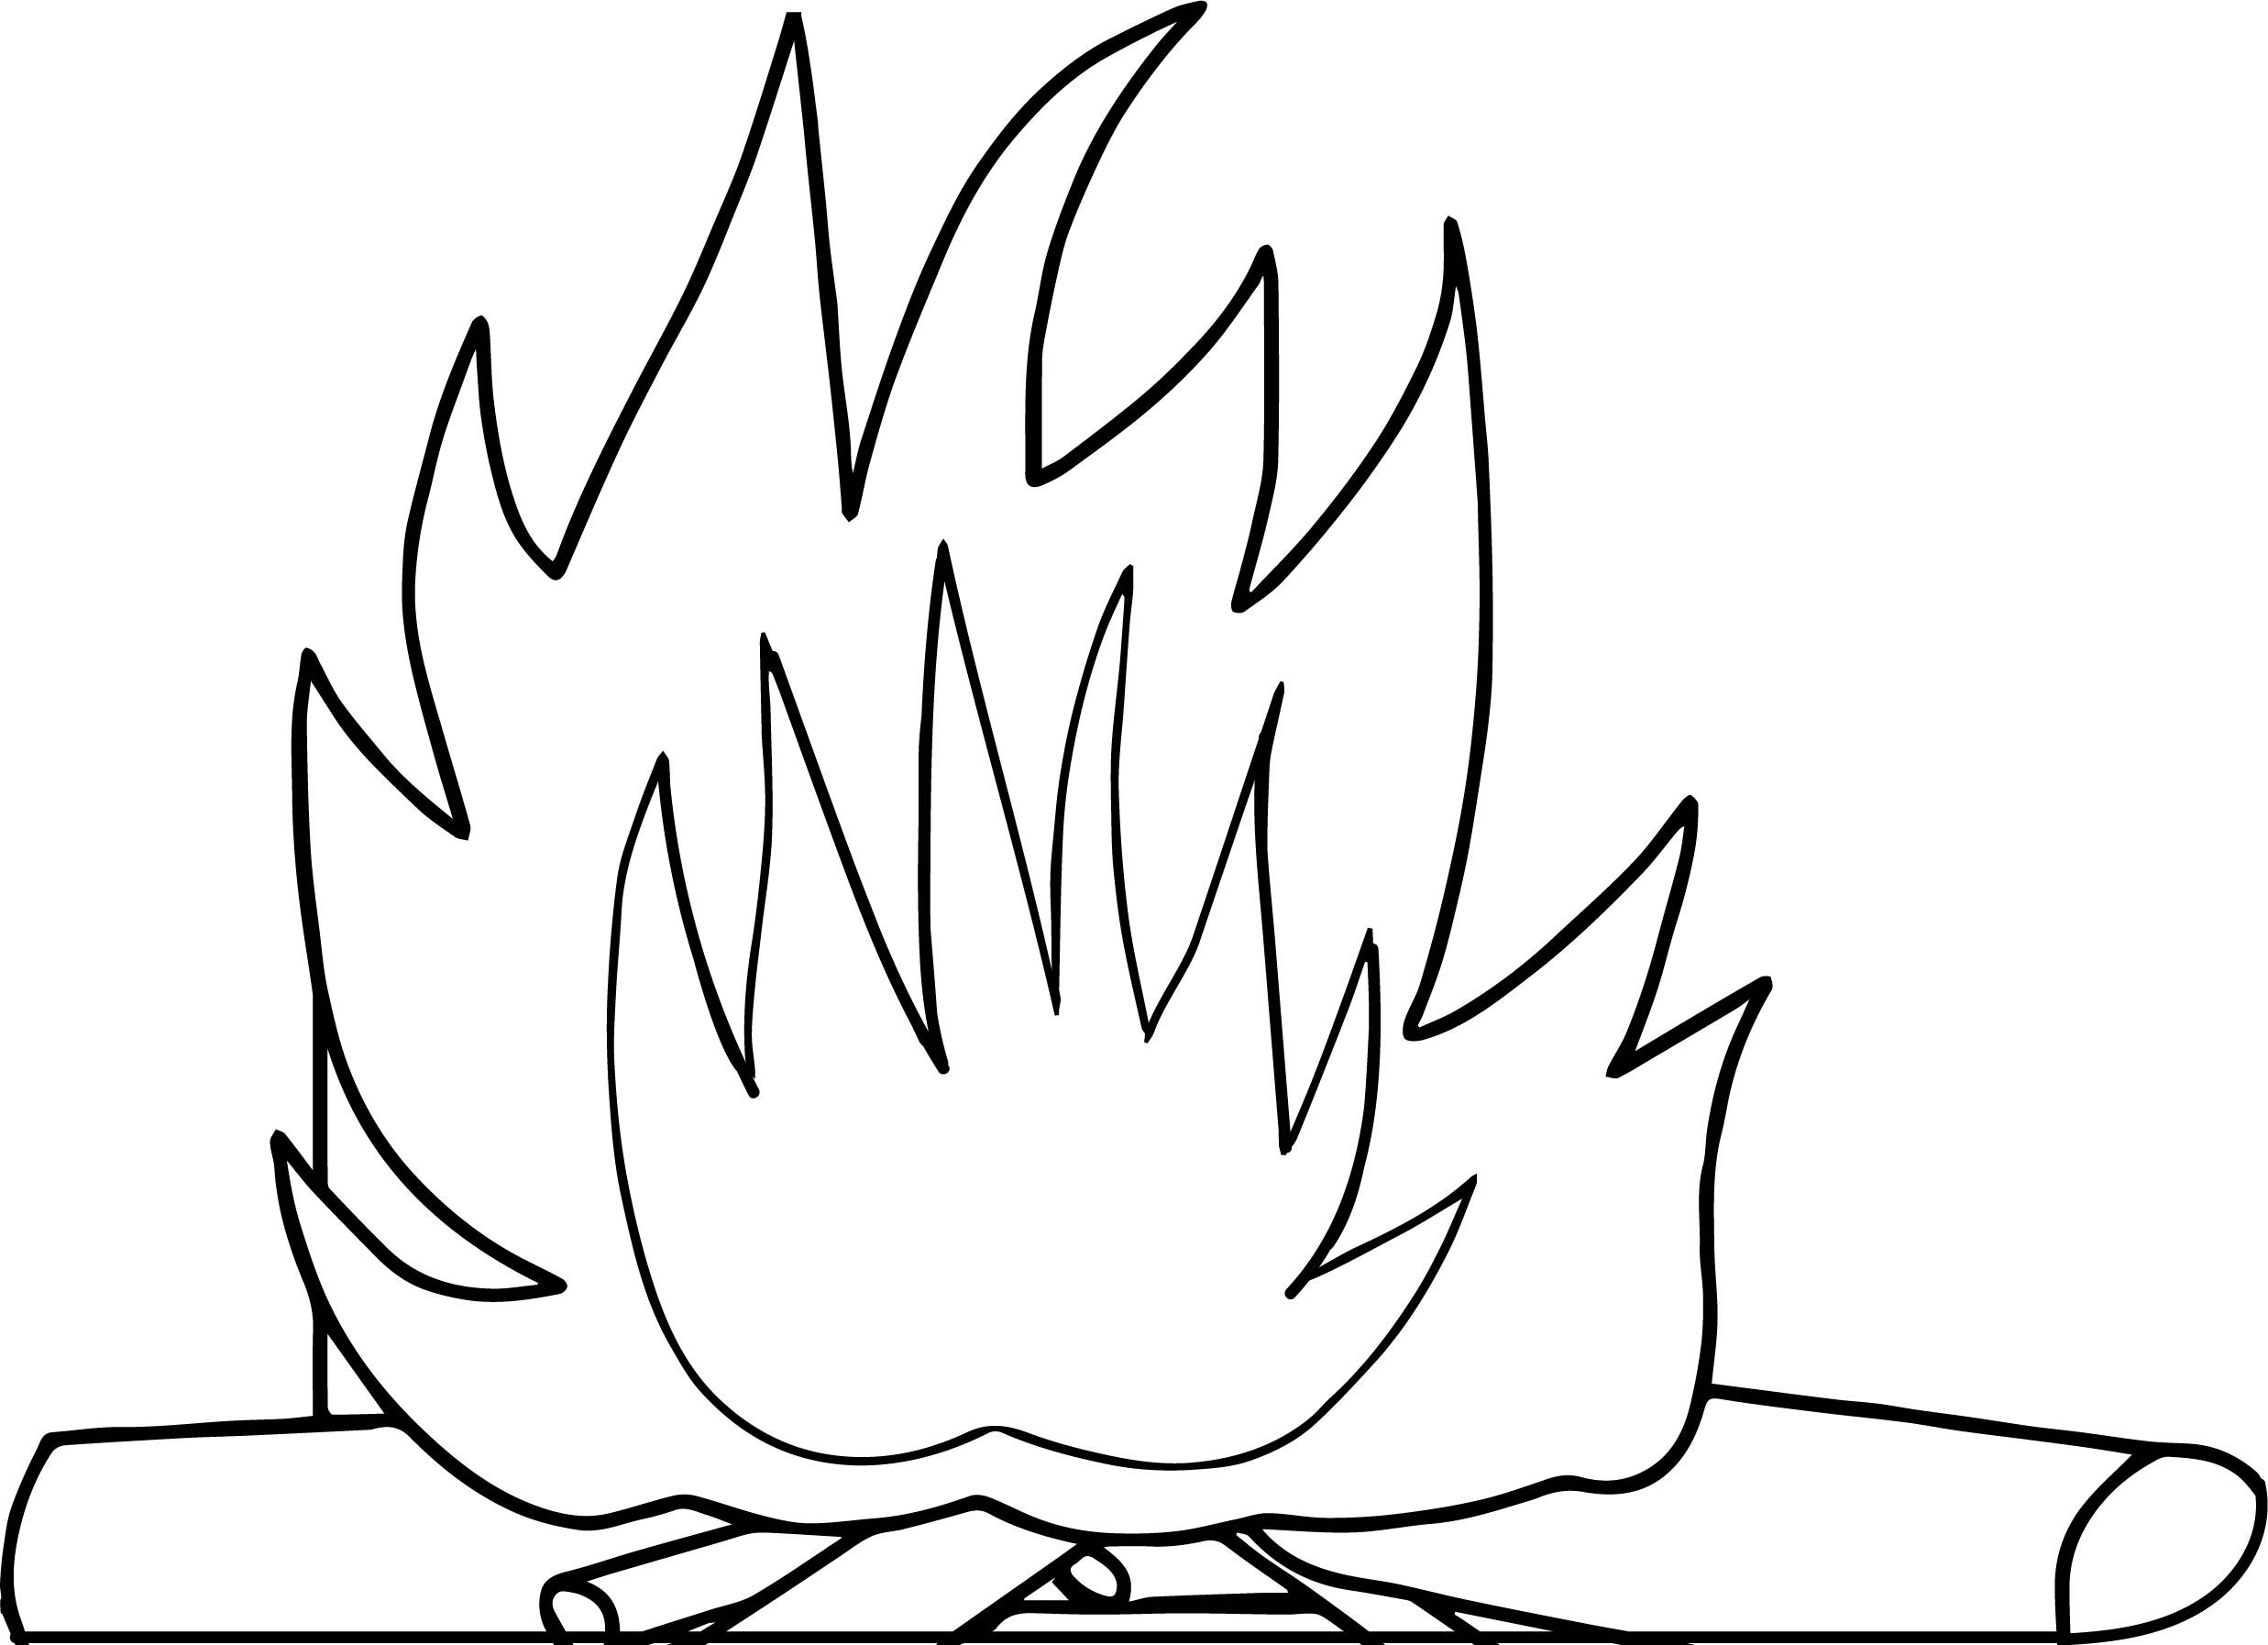 Cool Fire With Logs Camping Coloring Page Camping Coloring Pages Coloring Pages Coloring Pages For Kids